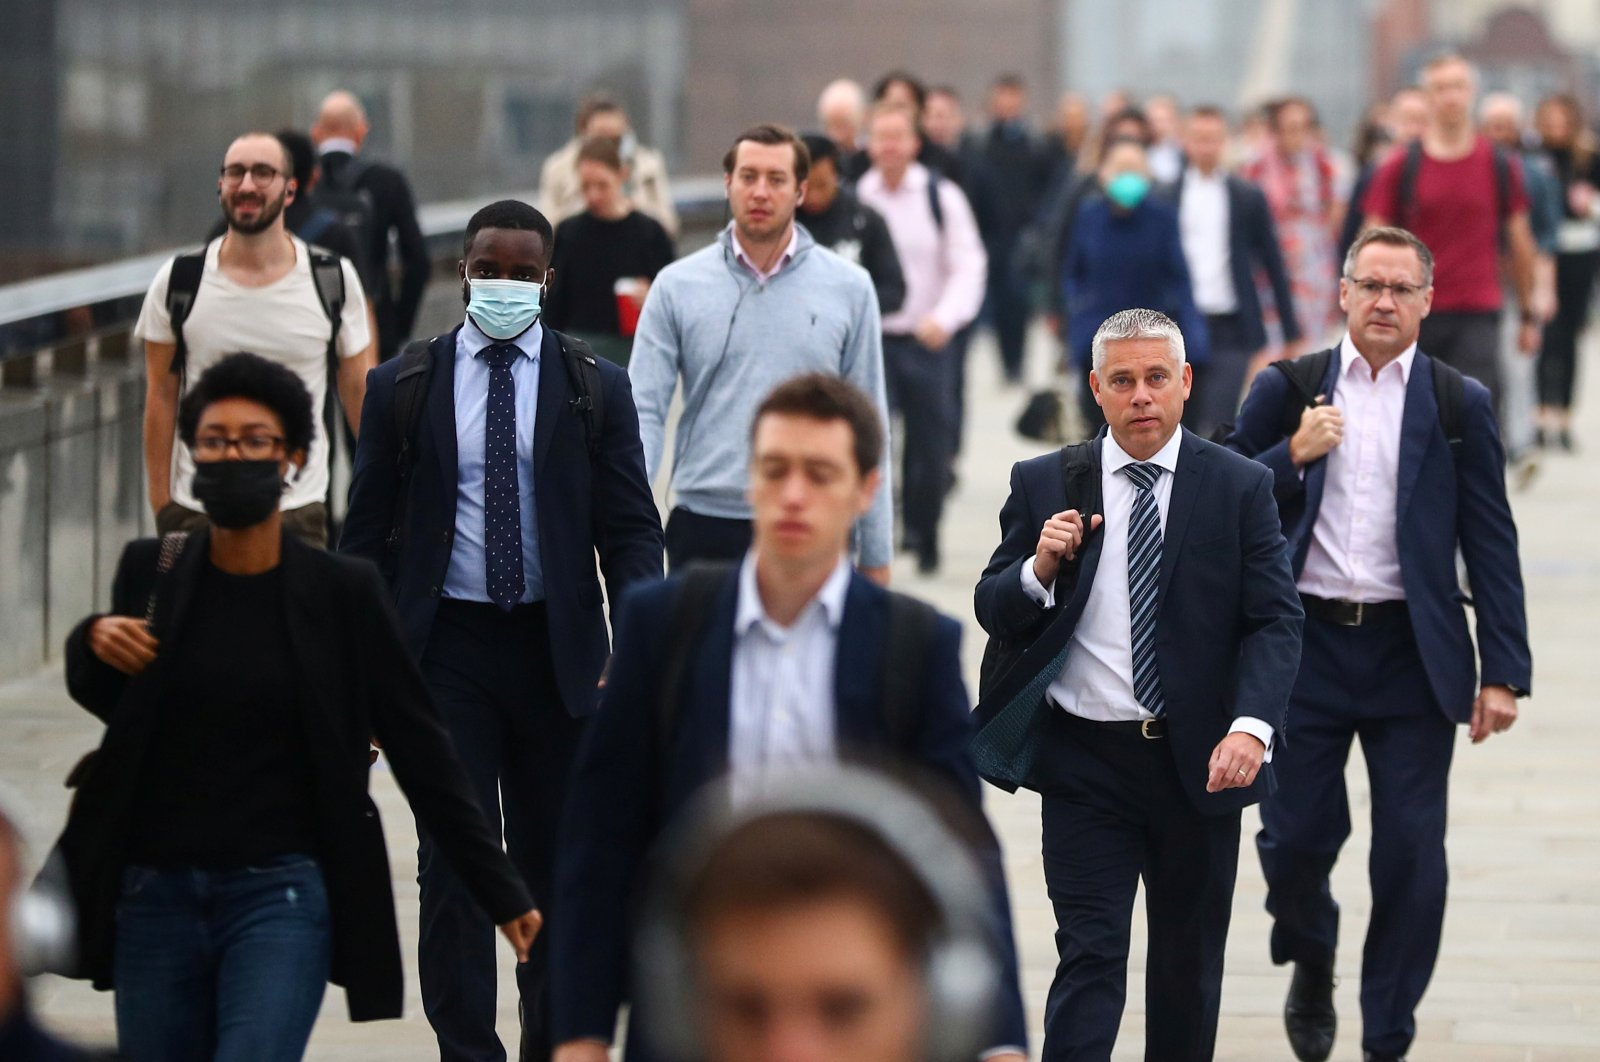 Commuters walk across the London Bridge during the morning rush hour, amid the coronavirus outbreak, in London, Britain, Sept. 21, 2020. (Reuters Photo)